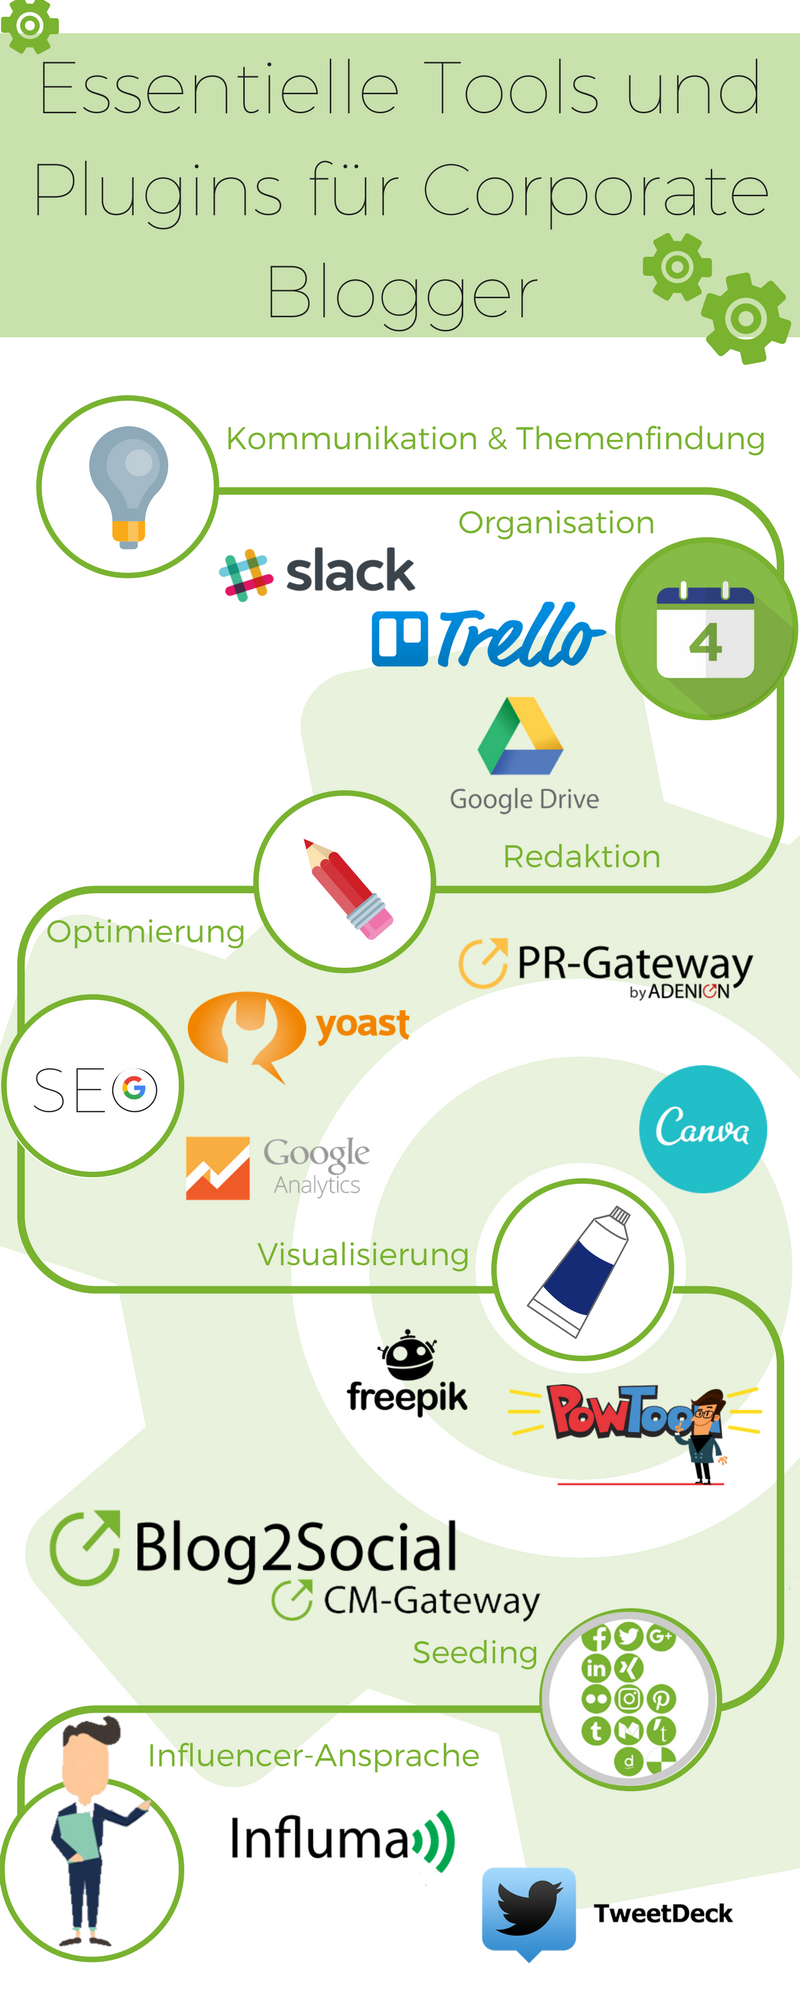 [Infografik] Essentielle Tools und Plugins für Corporate Blogger